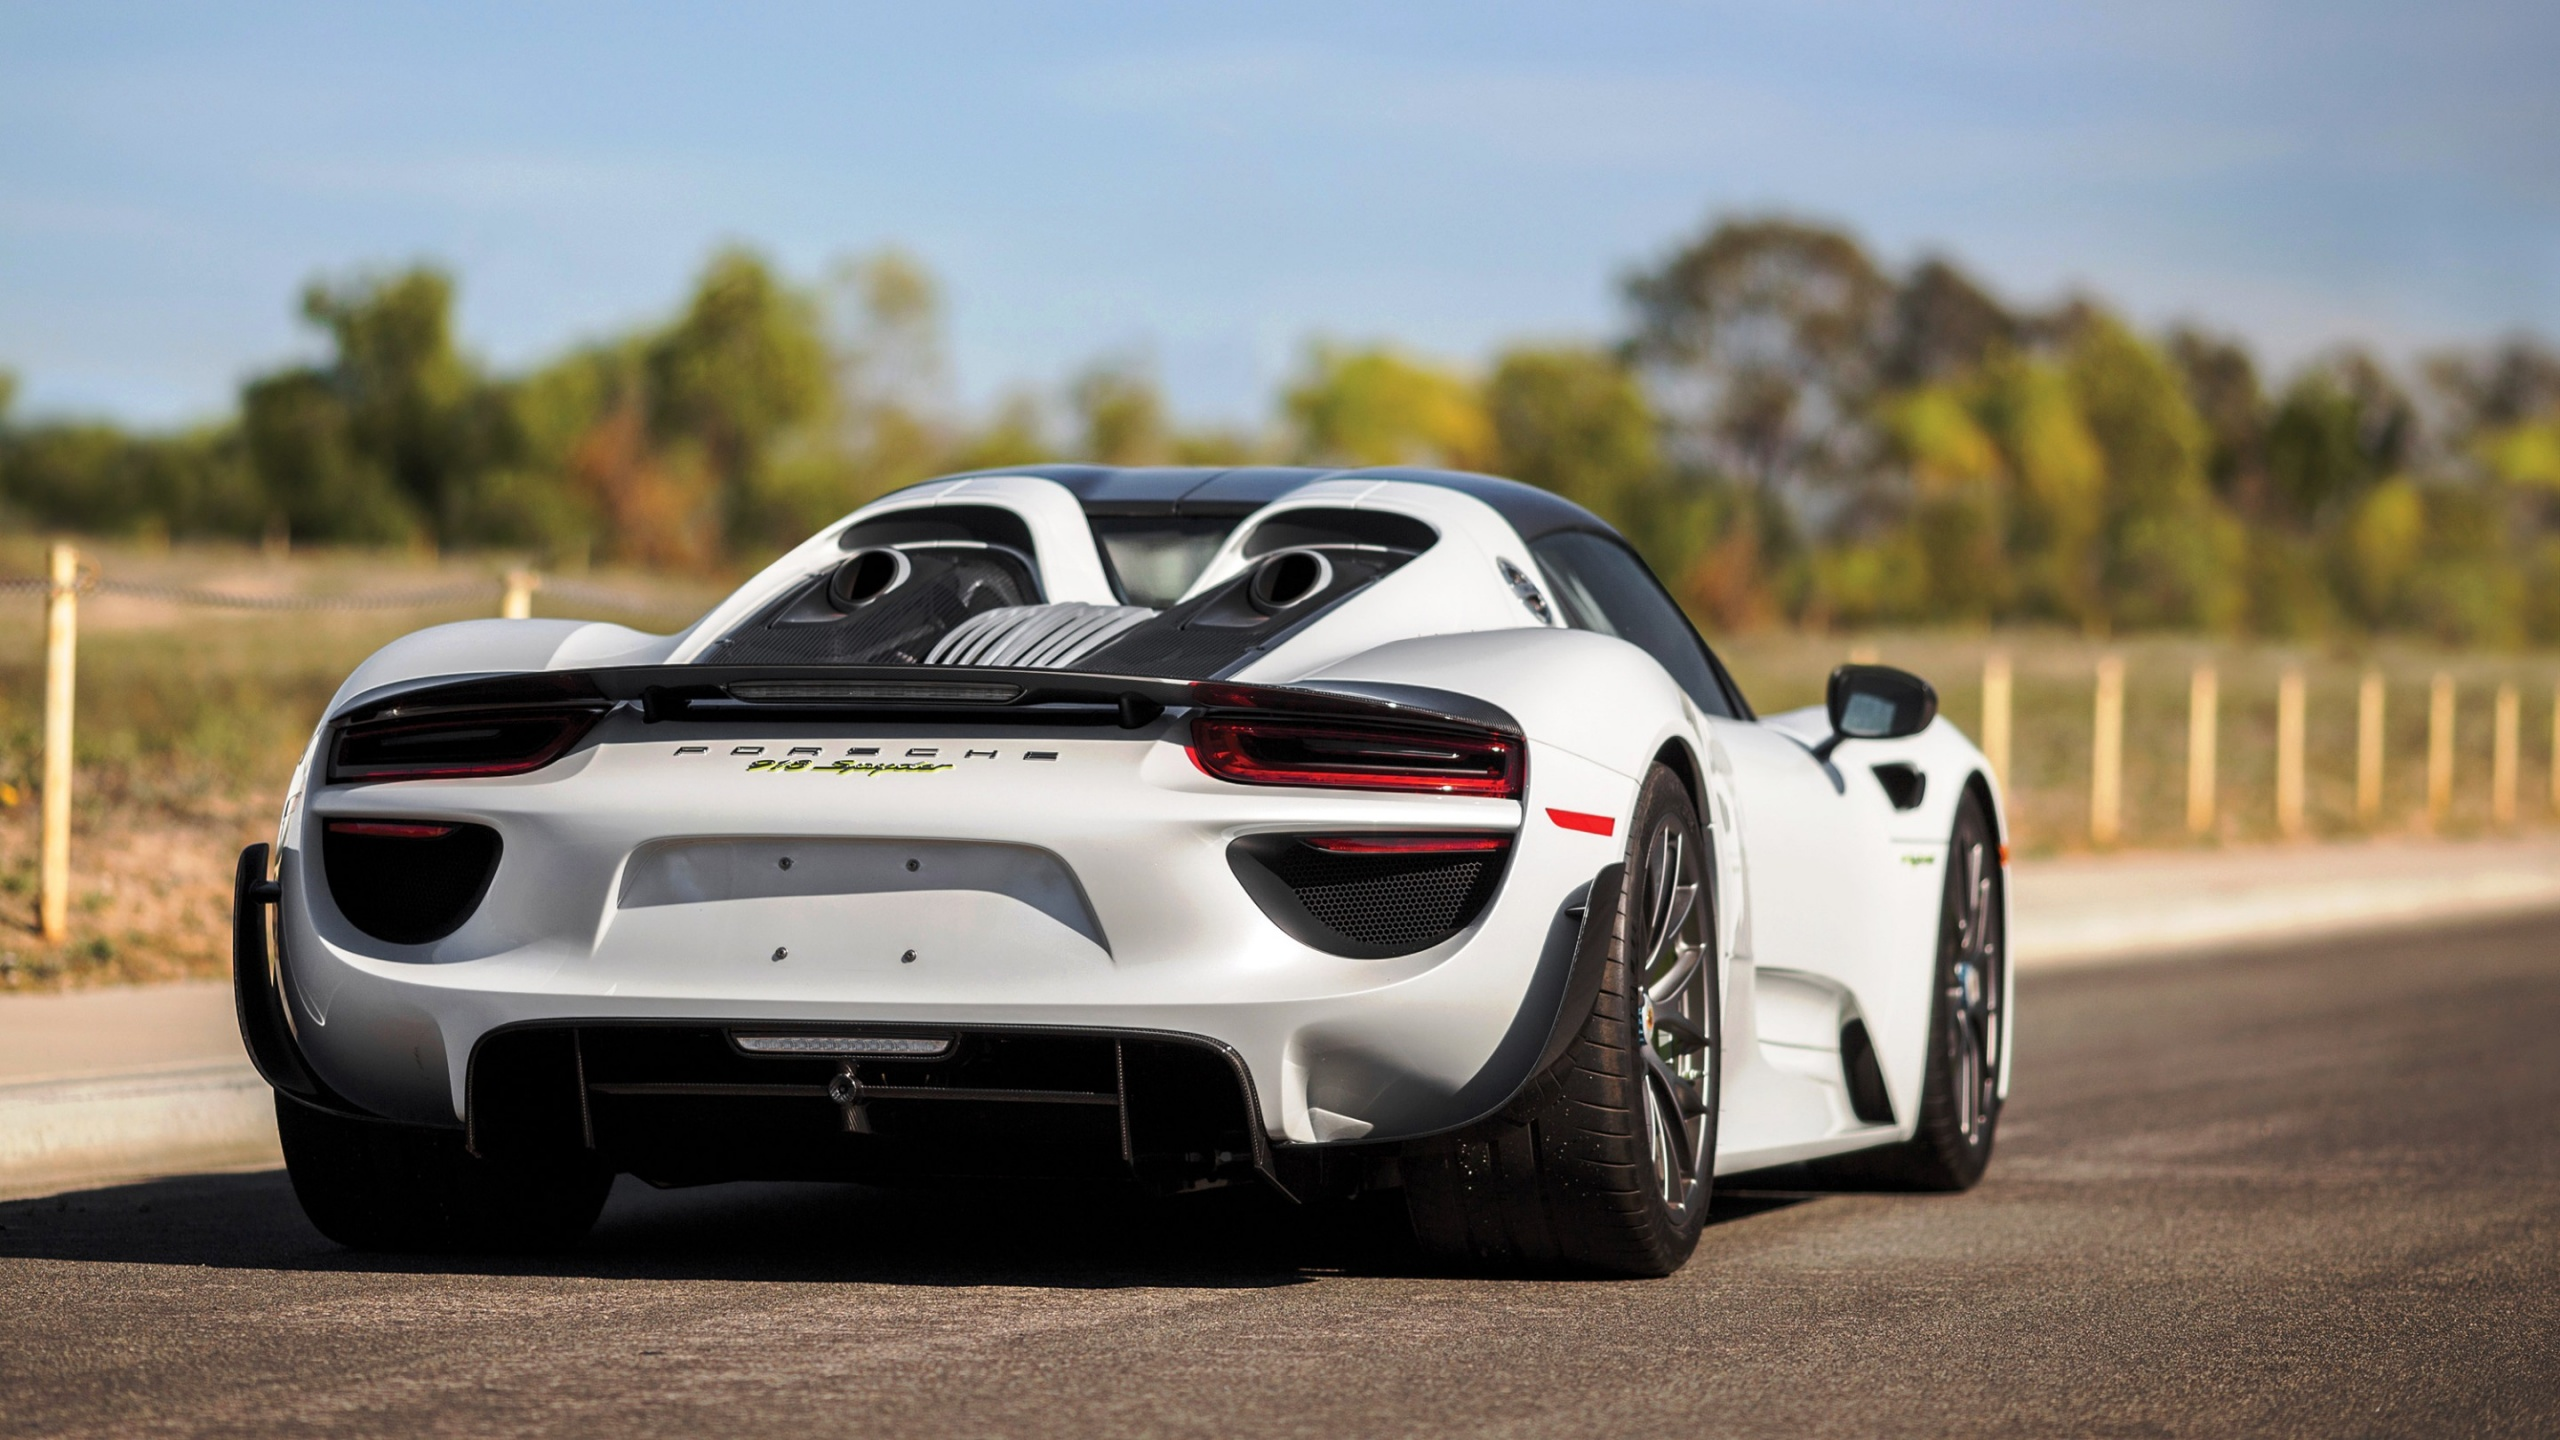 porsche 918 spyder weissach package 2015 wallpapers 2560x1440 826237. Black Bedroom Furniture Sets. Home Design Ideas